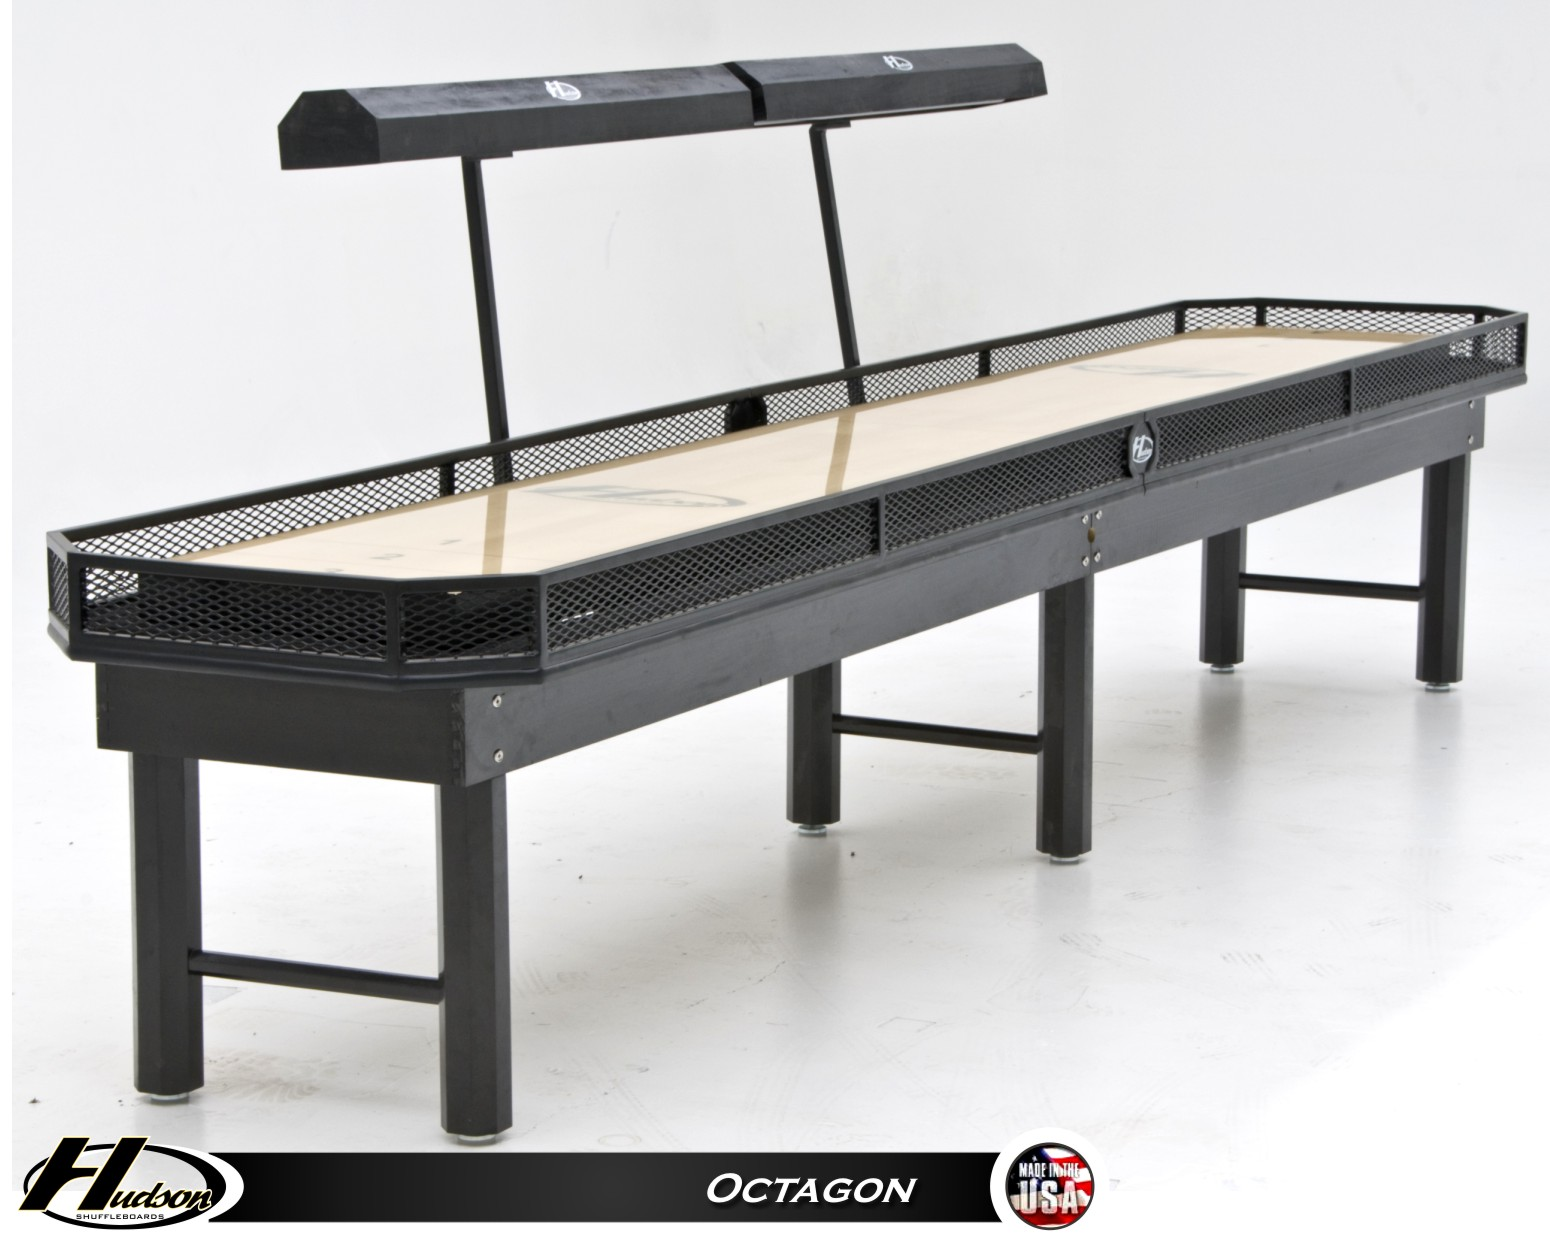 12u0027 Octagon Shuffleboard Table. View Detailed Images (5)